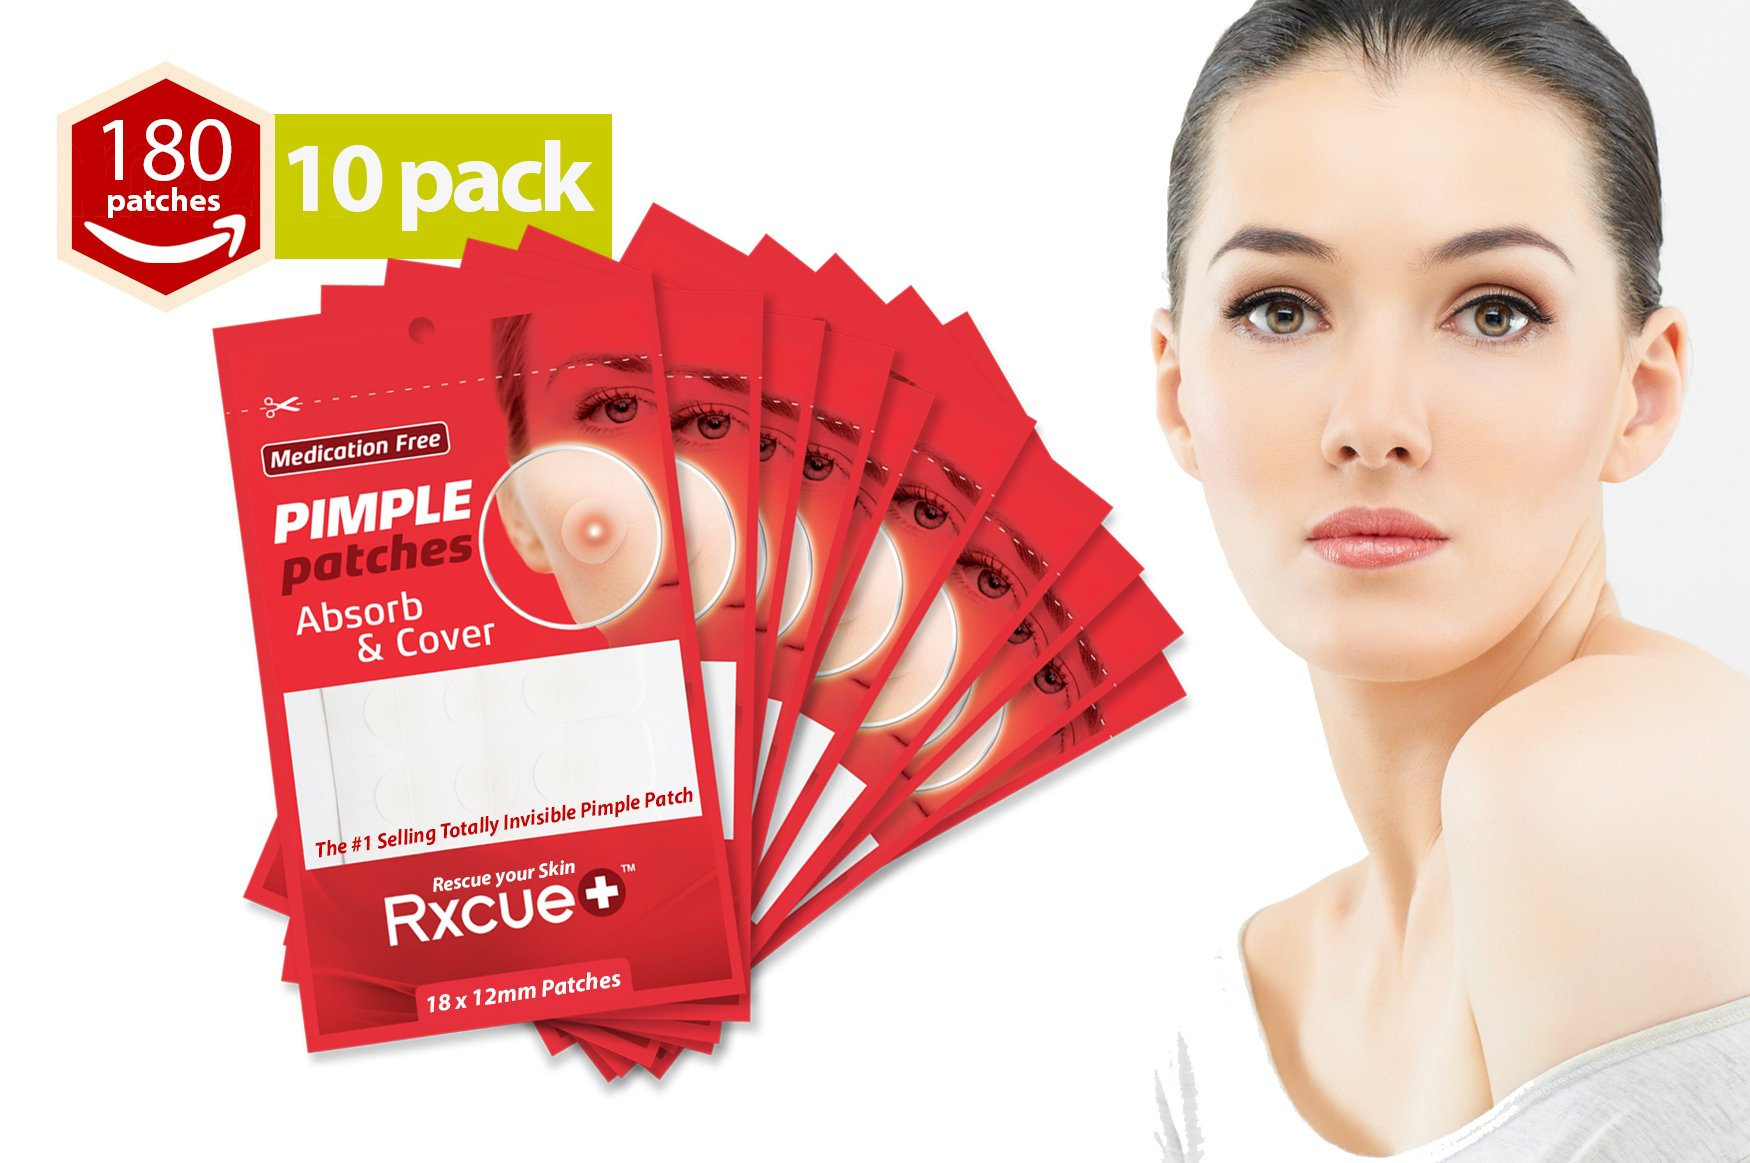 Rxcue Korean INVISIBLE Acne Blackhead Pimple Master Patches | 2, 5 AND 10 Pack | Super Thin and Medication Free | 12 mm size (10 Pack - 180 Pieces)